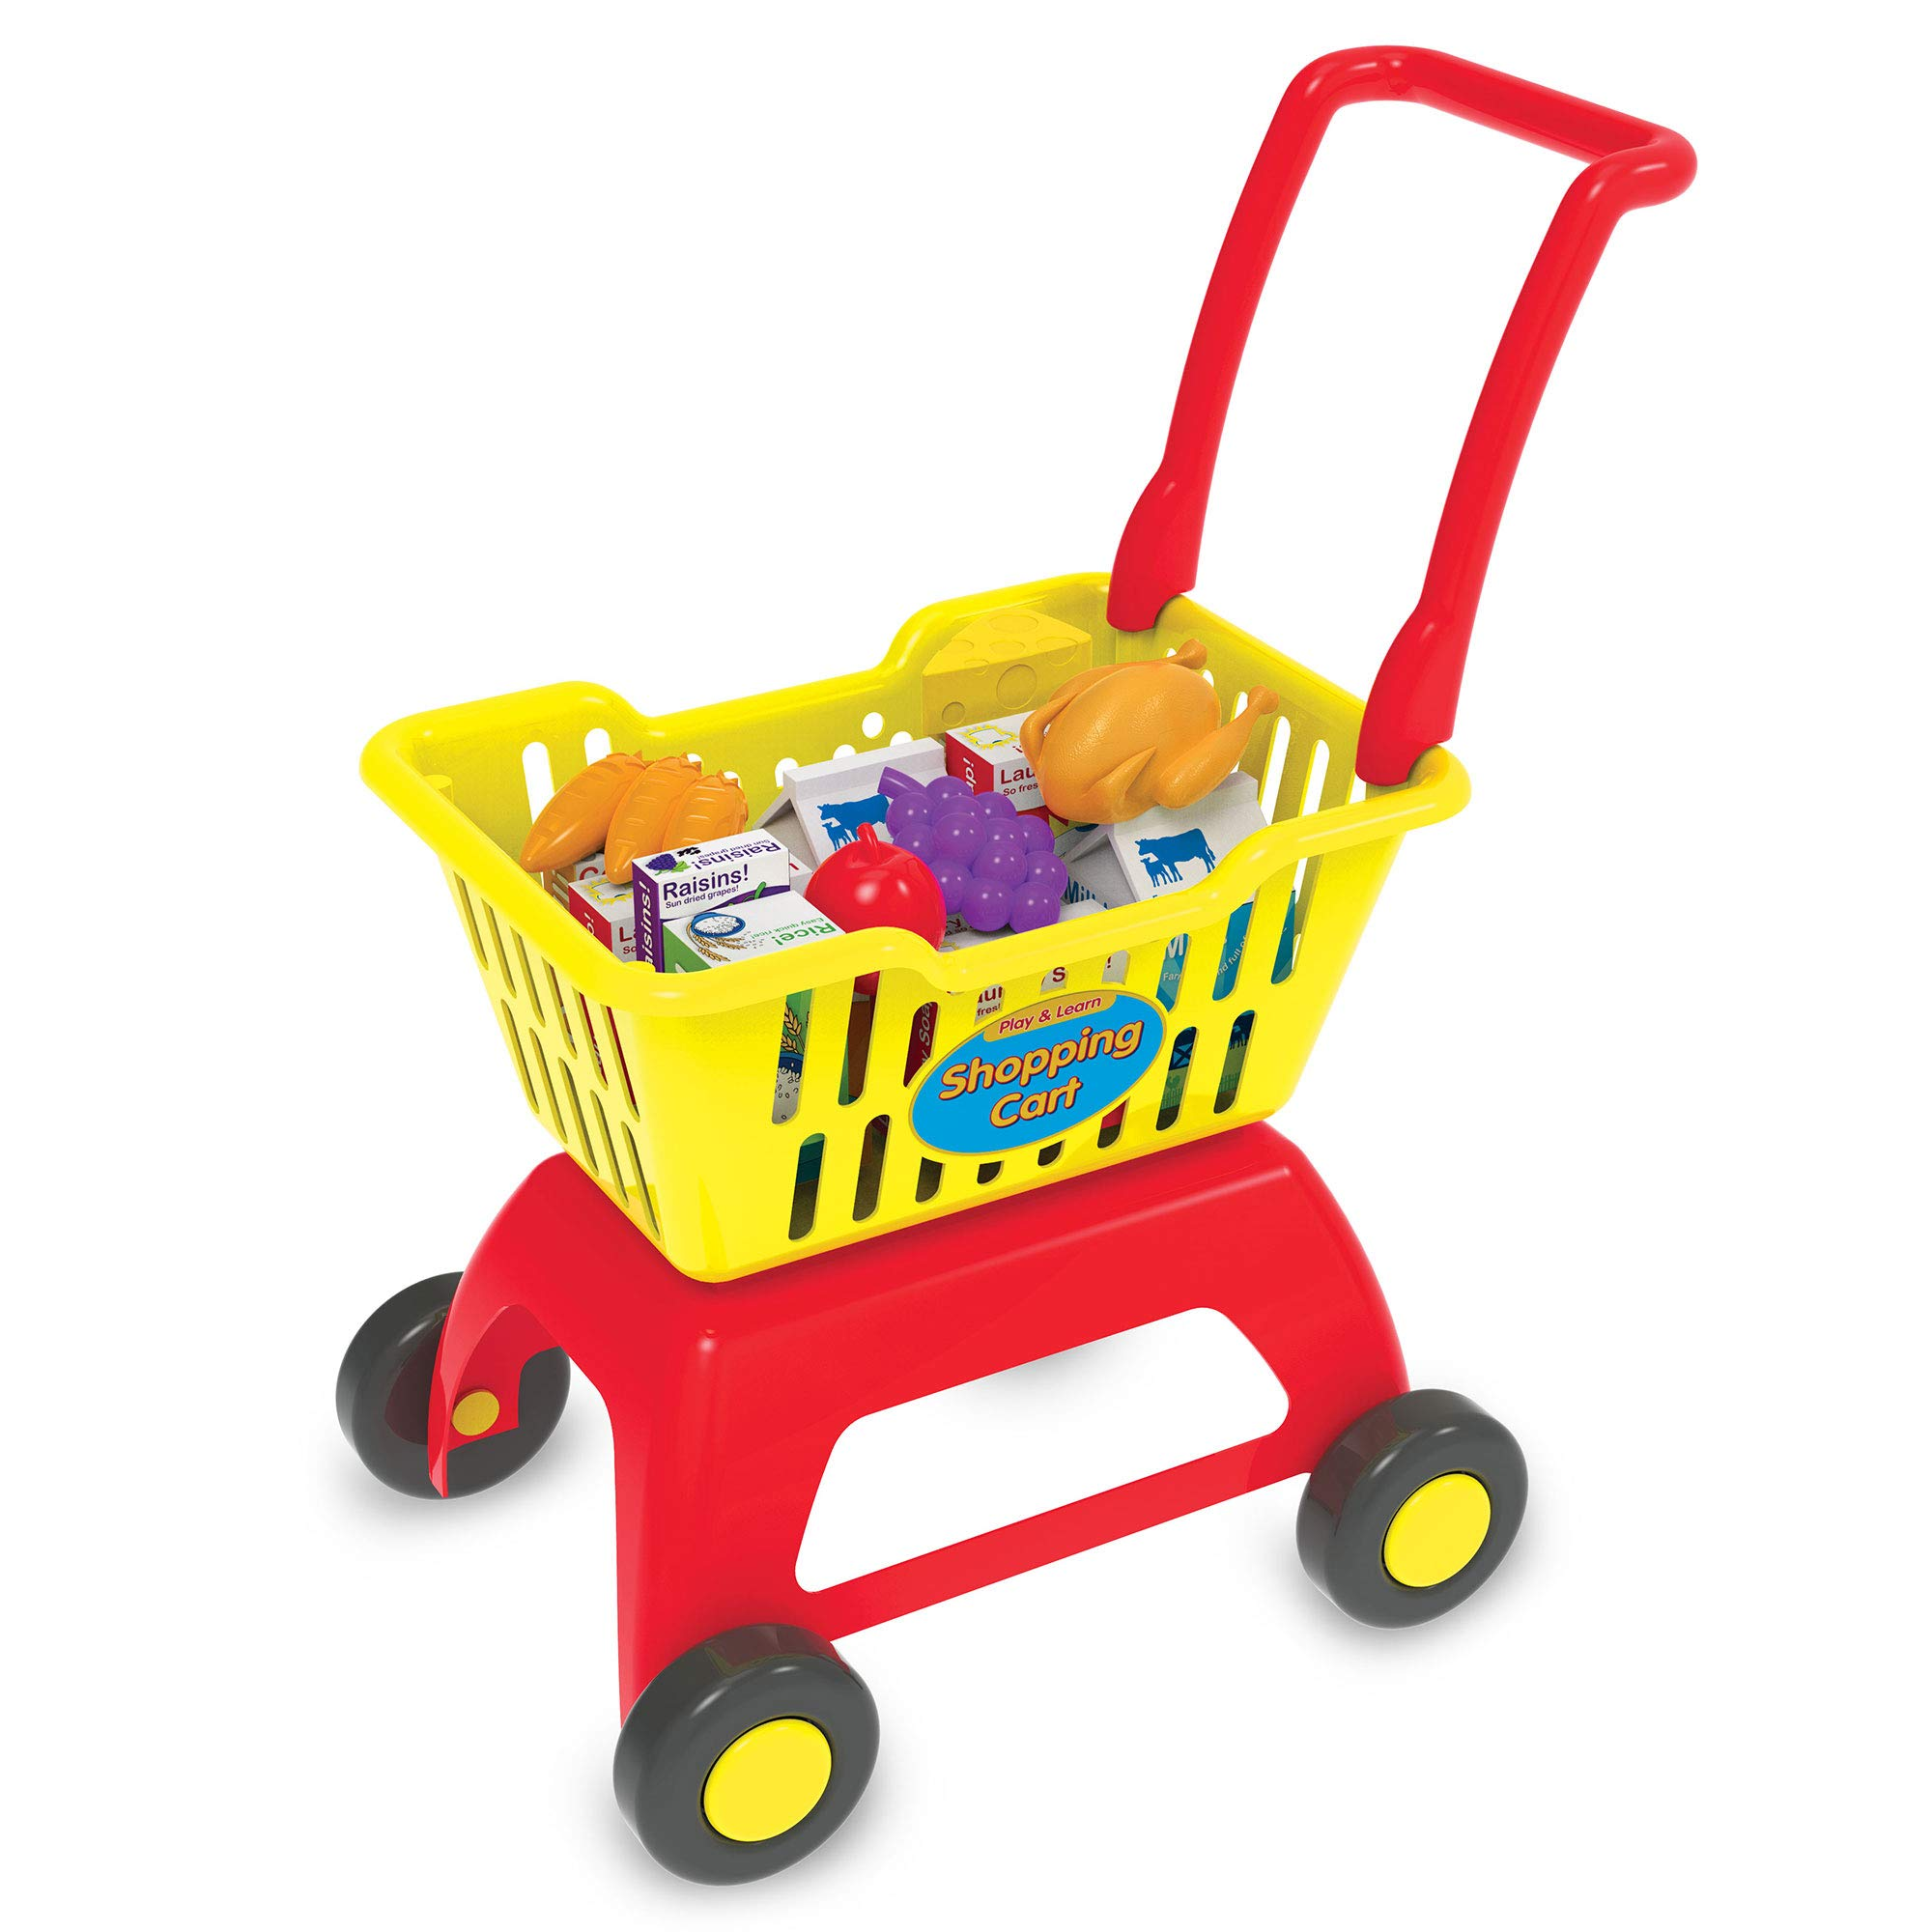 The Learning Journey Play & Learn - Shopping Cart - Toddler Toys & Gifts for Boys & Girls Ages 3 Years and Up by The Learning Journey